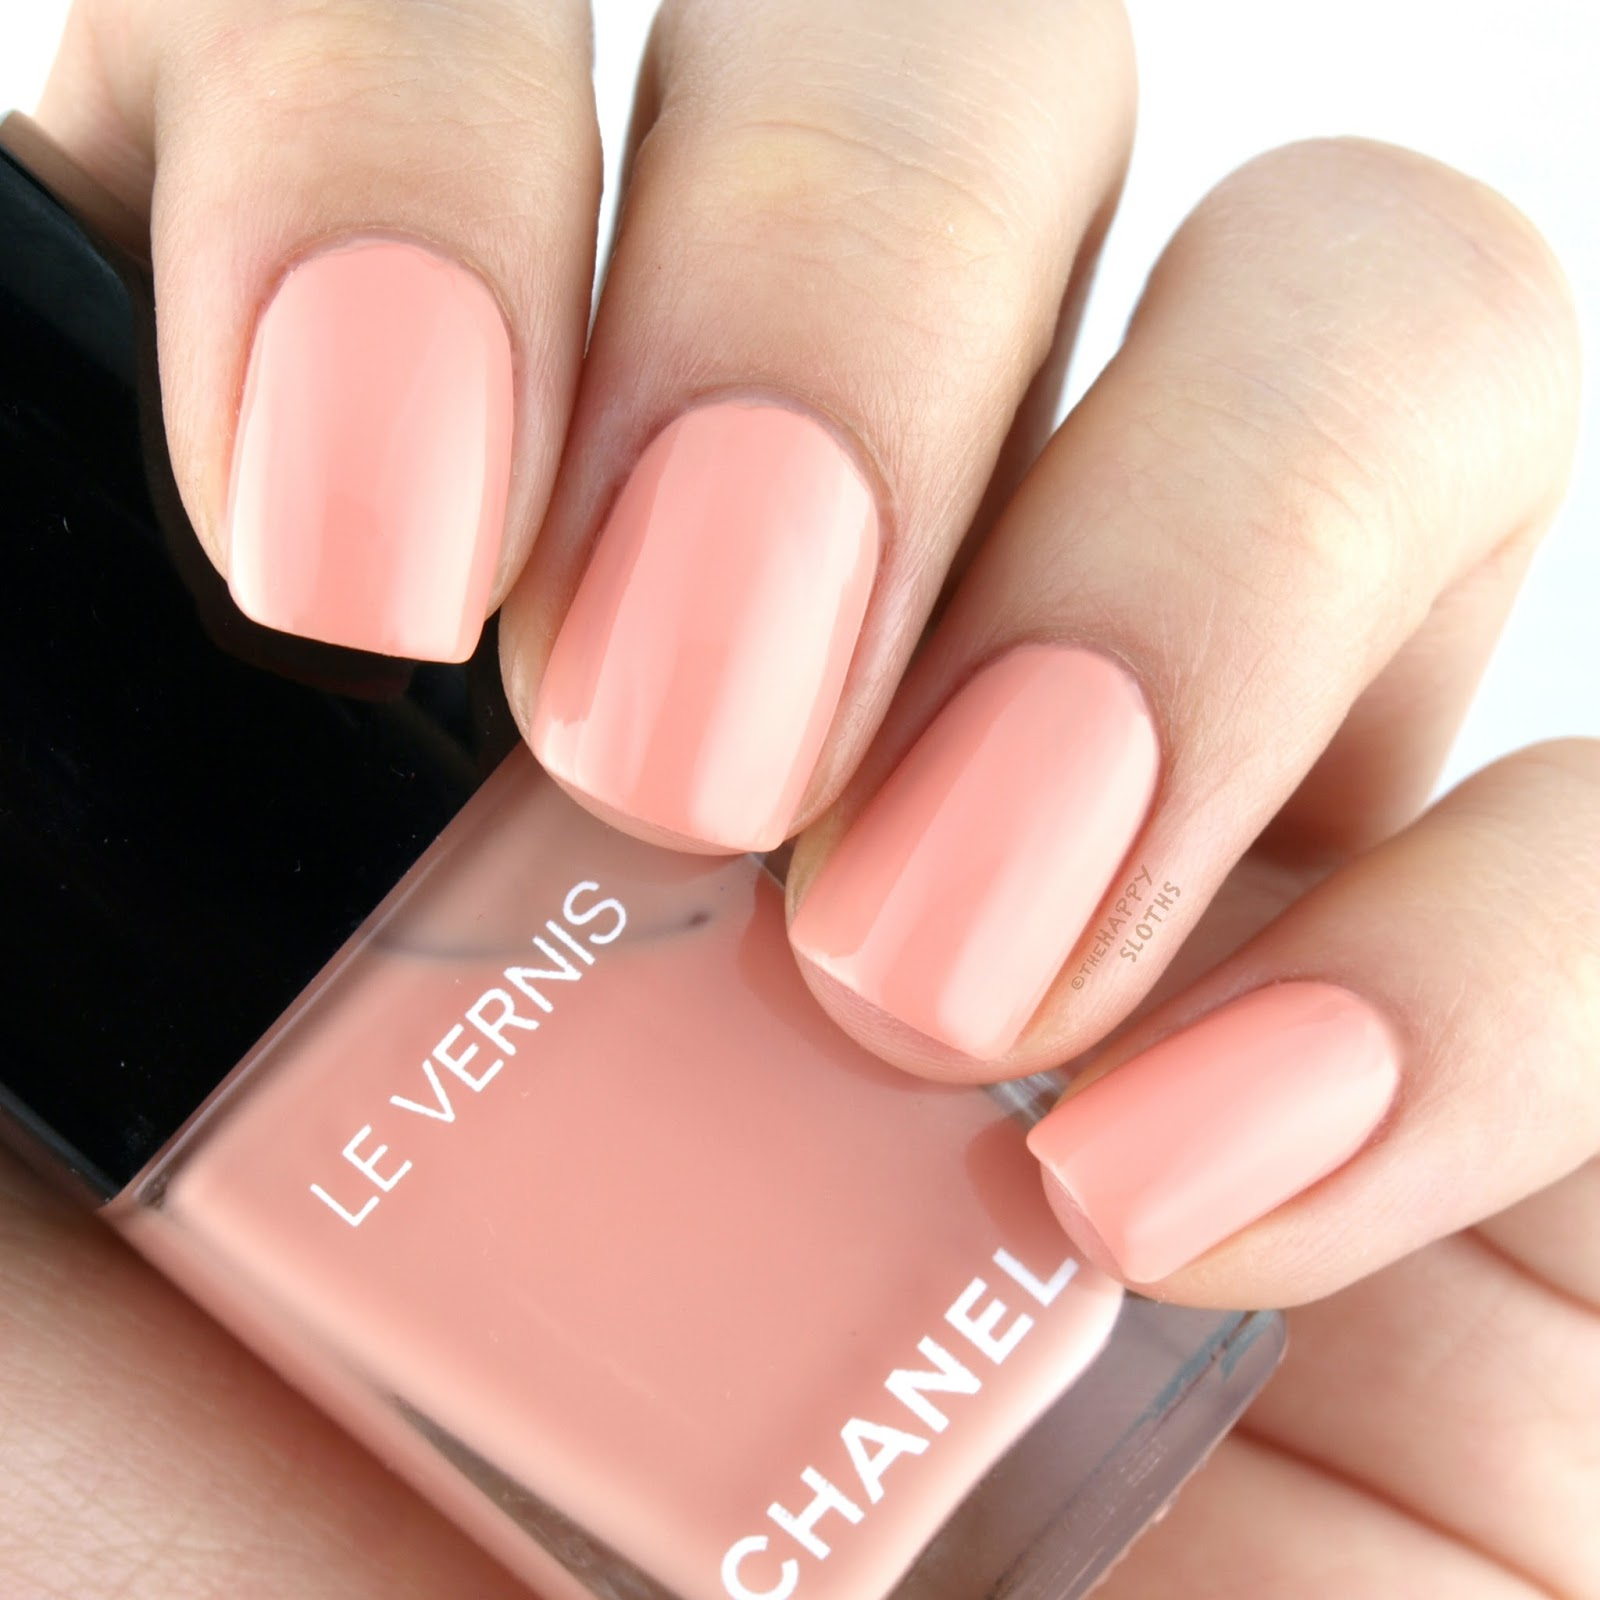 Chanel Spring 2017 Le Vernis 568 Tulle: Review and Swatches